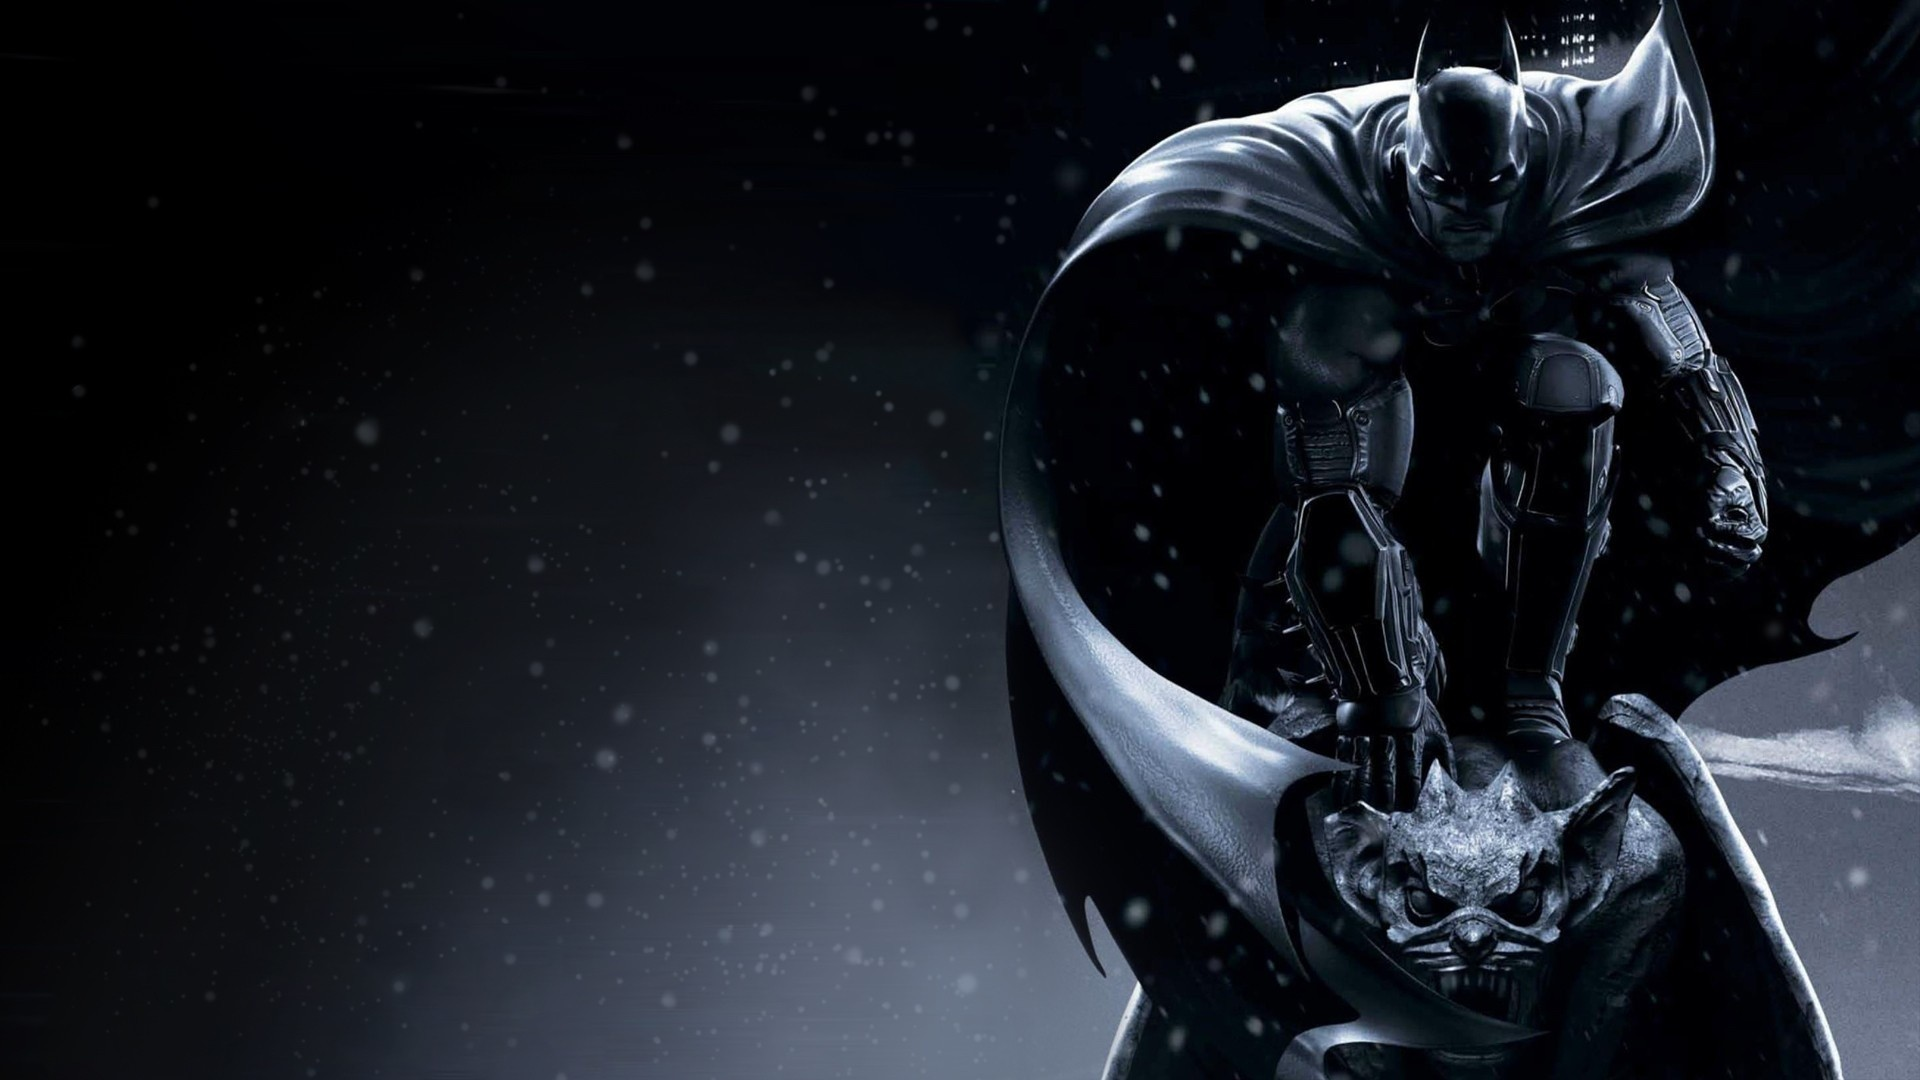 Batman Hd Desktop Wallpaper 1920x1080 78 Images